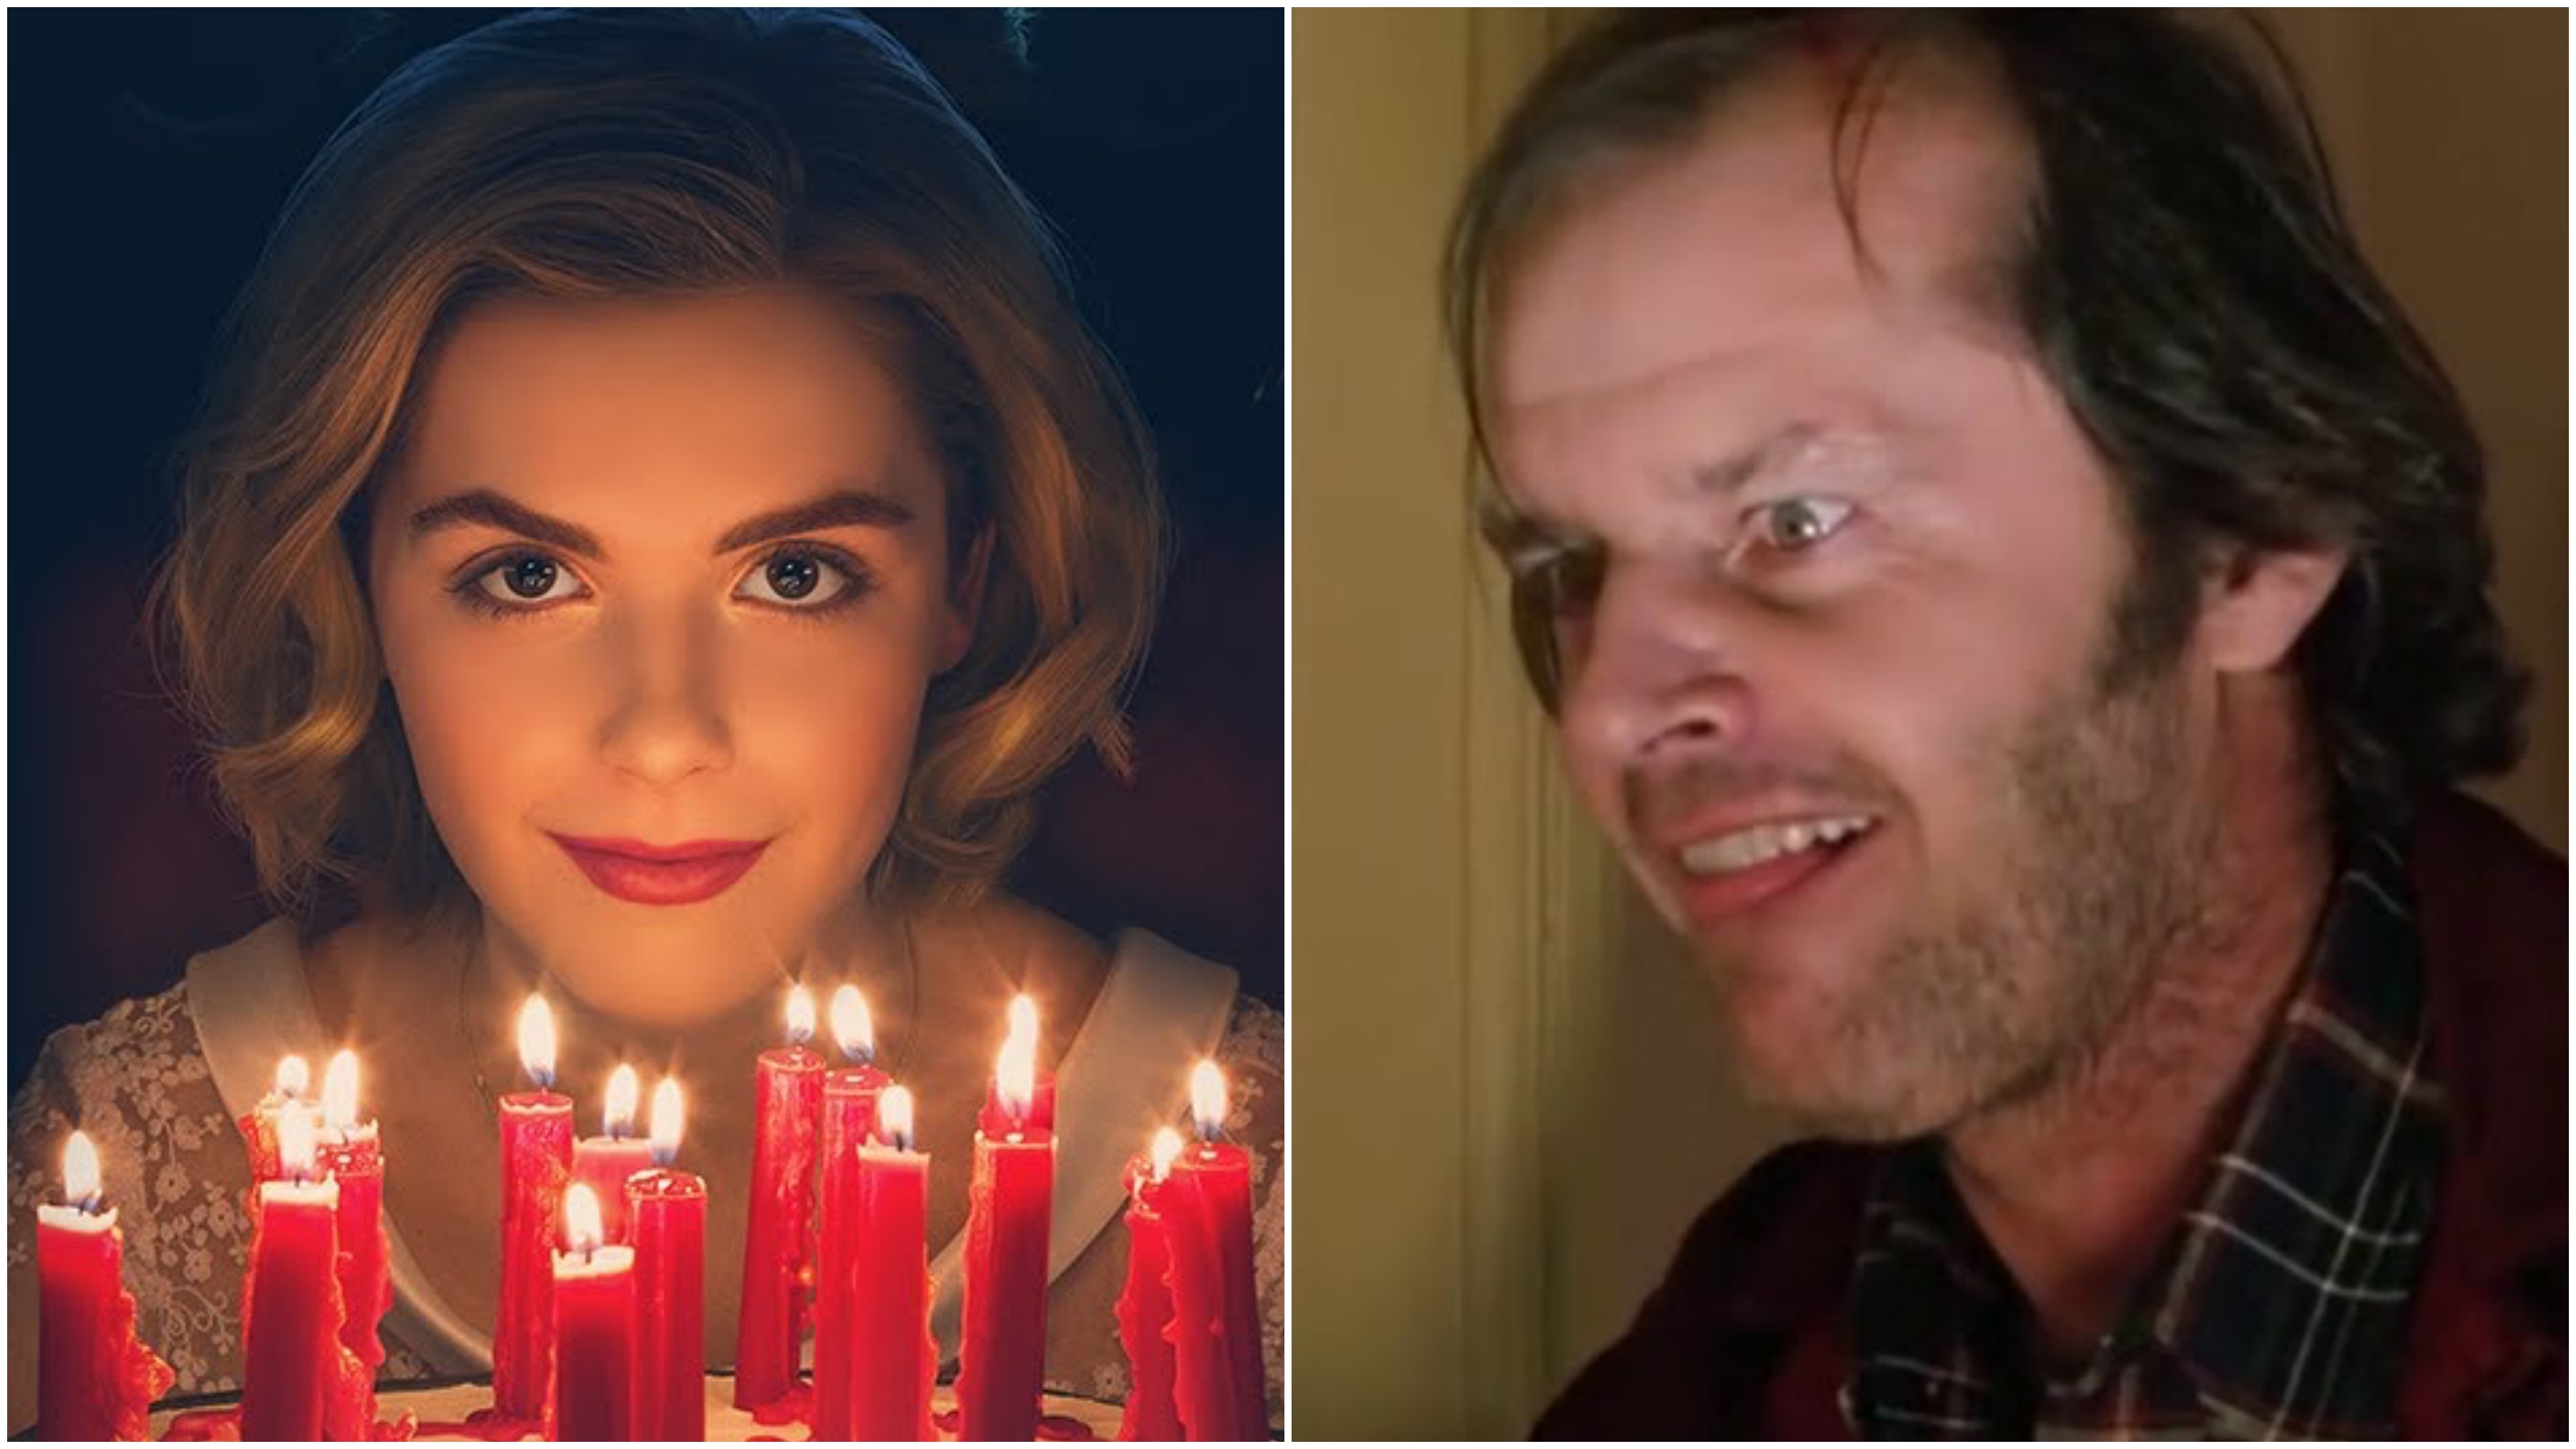 All the New Horror Movies and TV Shows Coming to Netflix Before